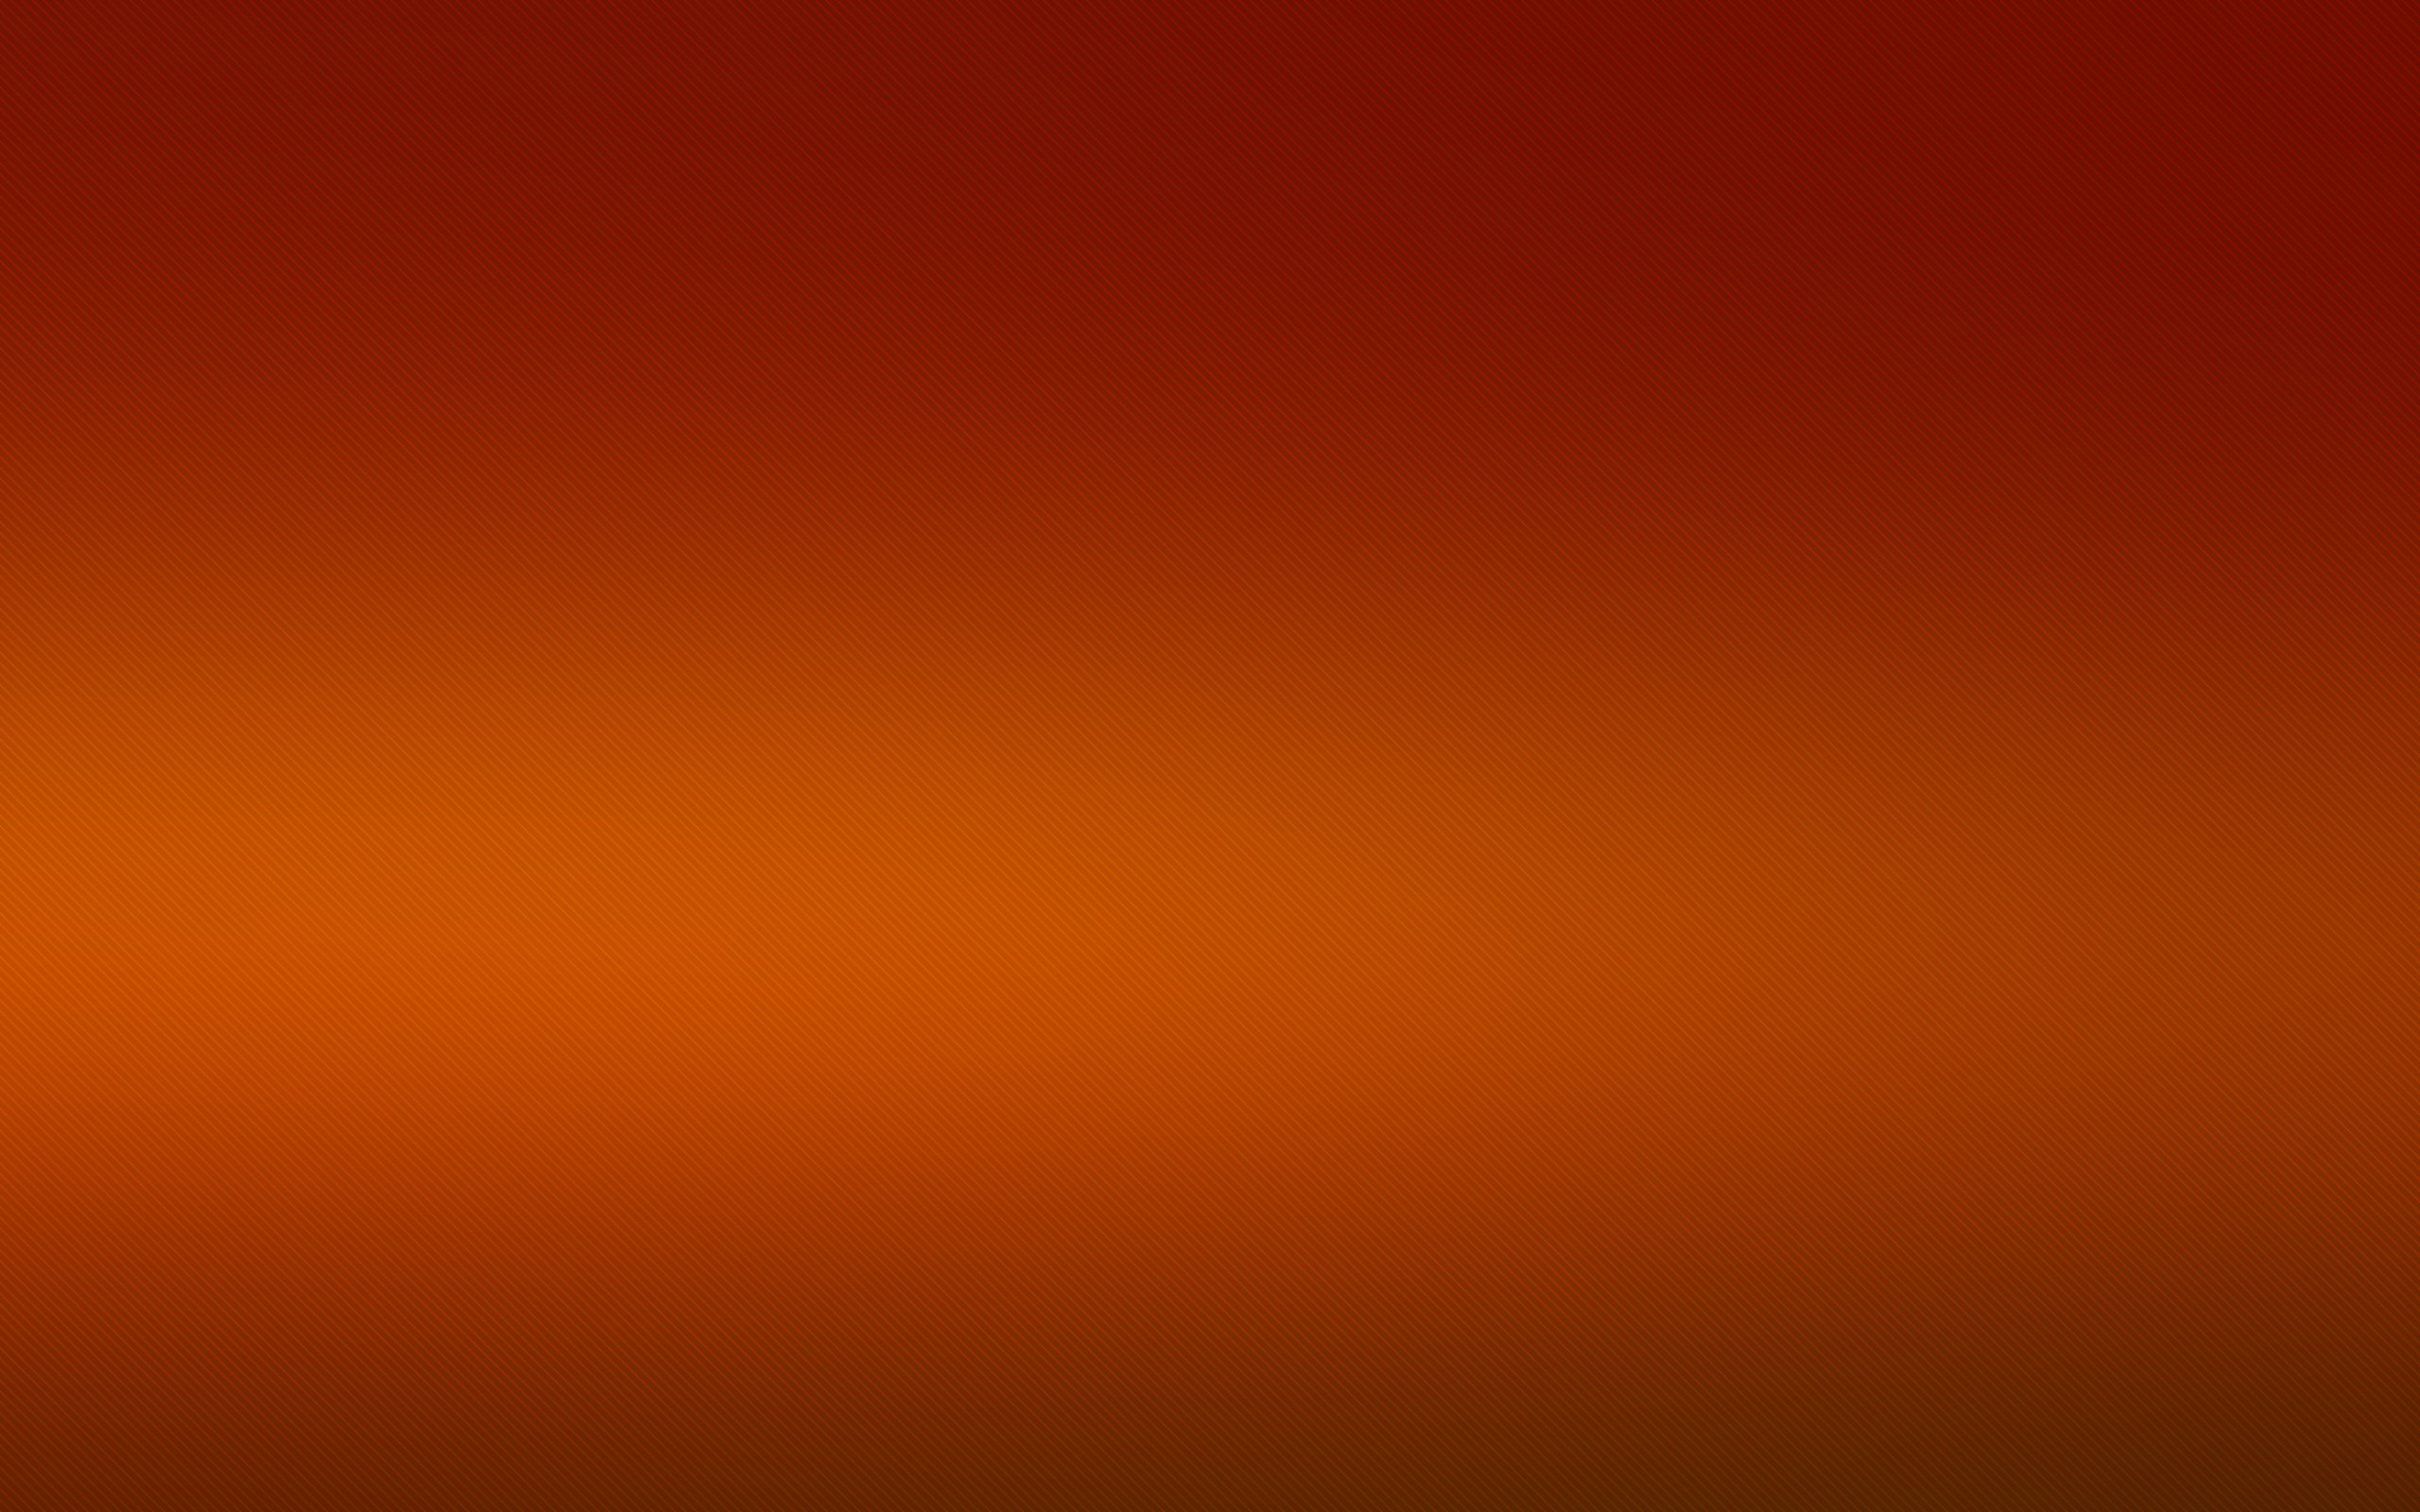 Free Download Abstract Orange Wallpaper 2560x1600 Abstract